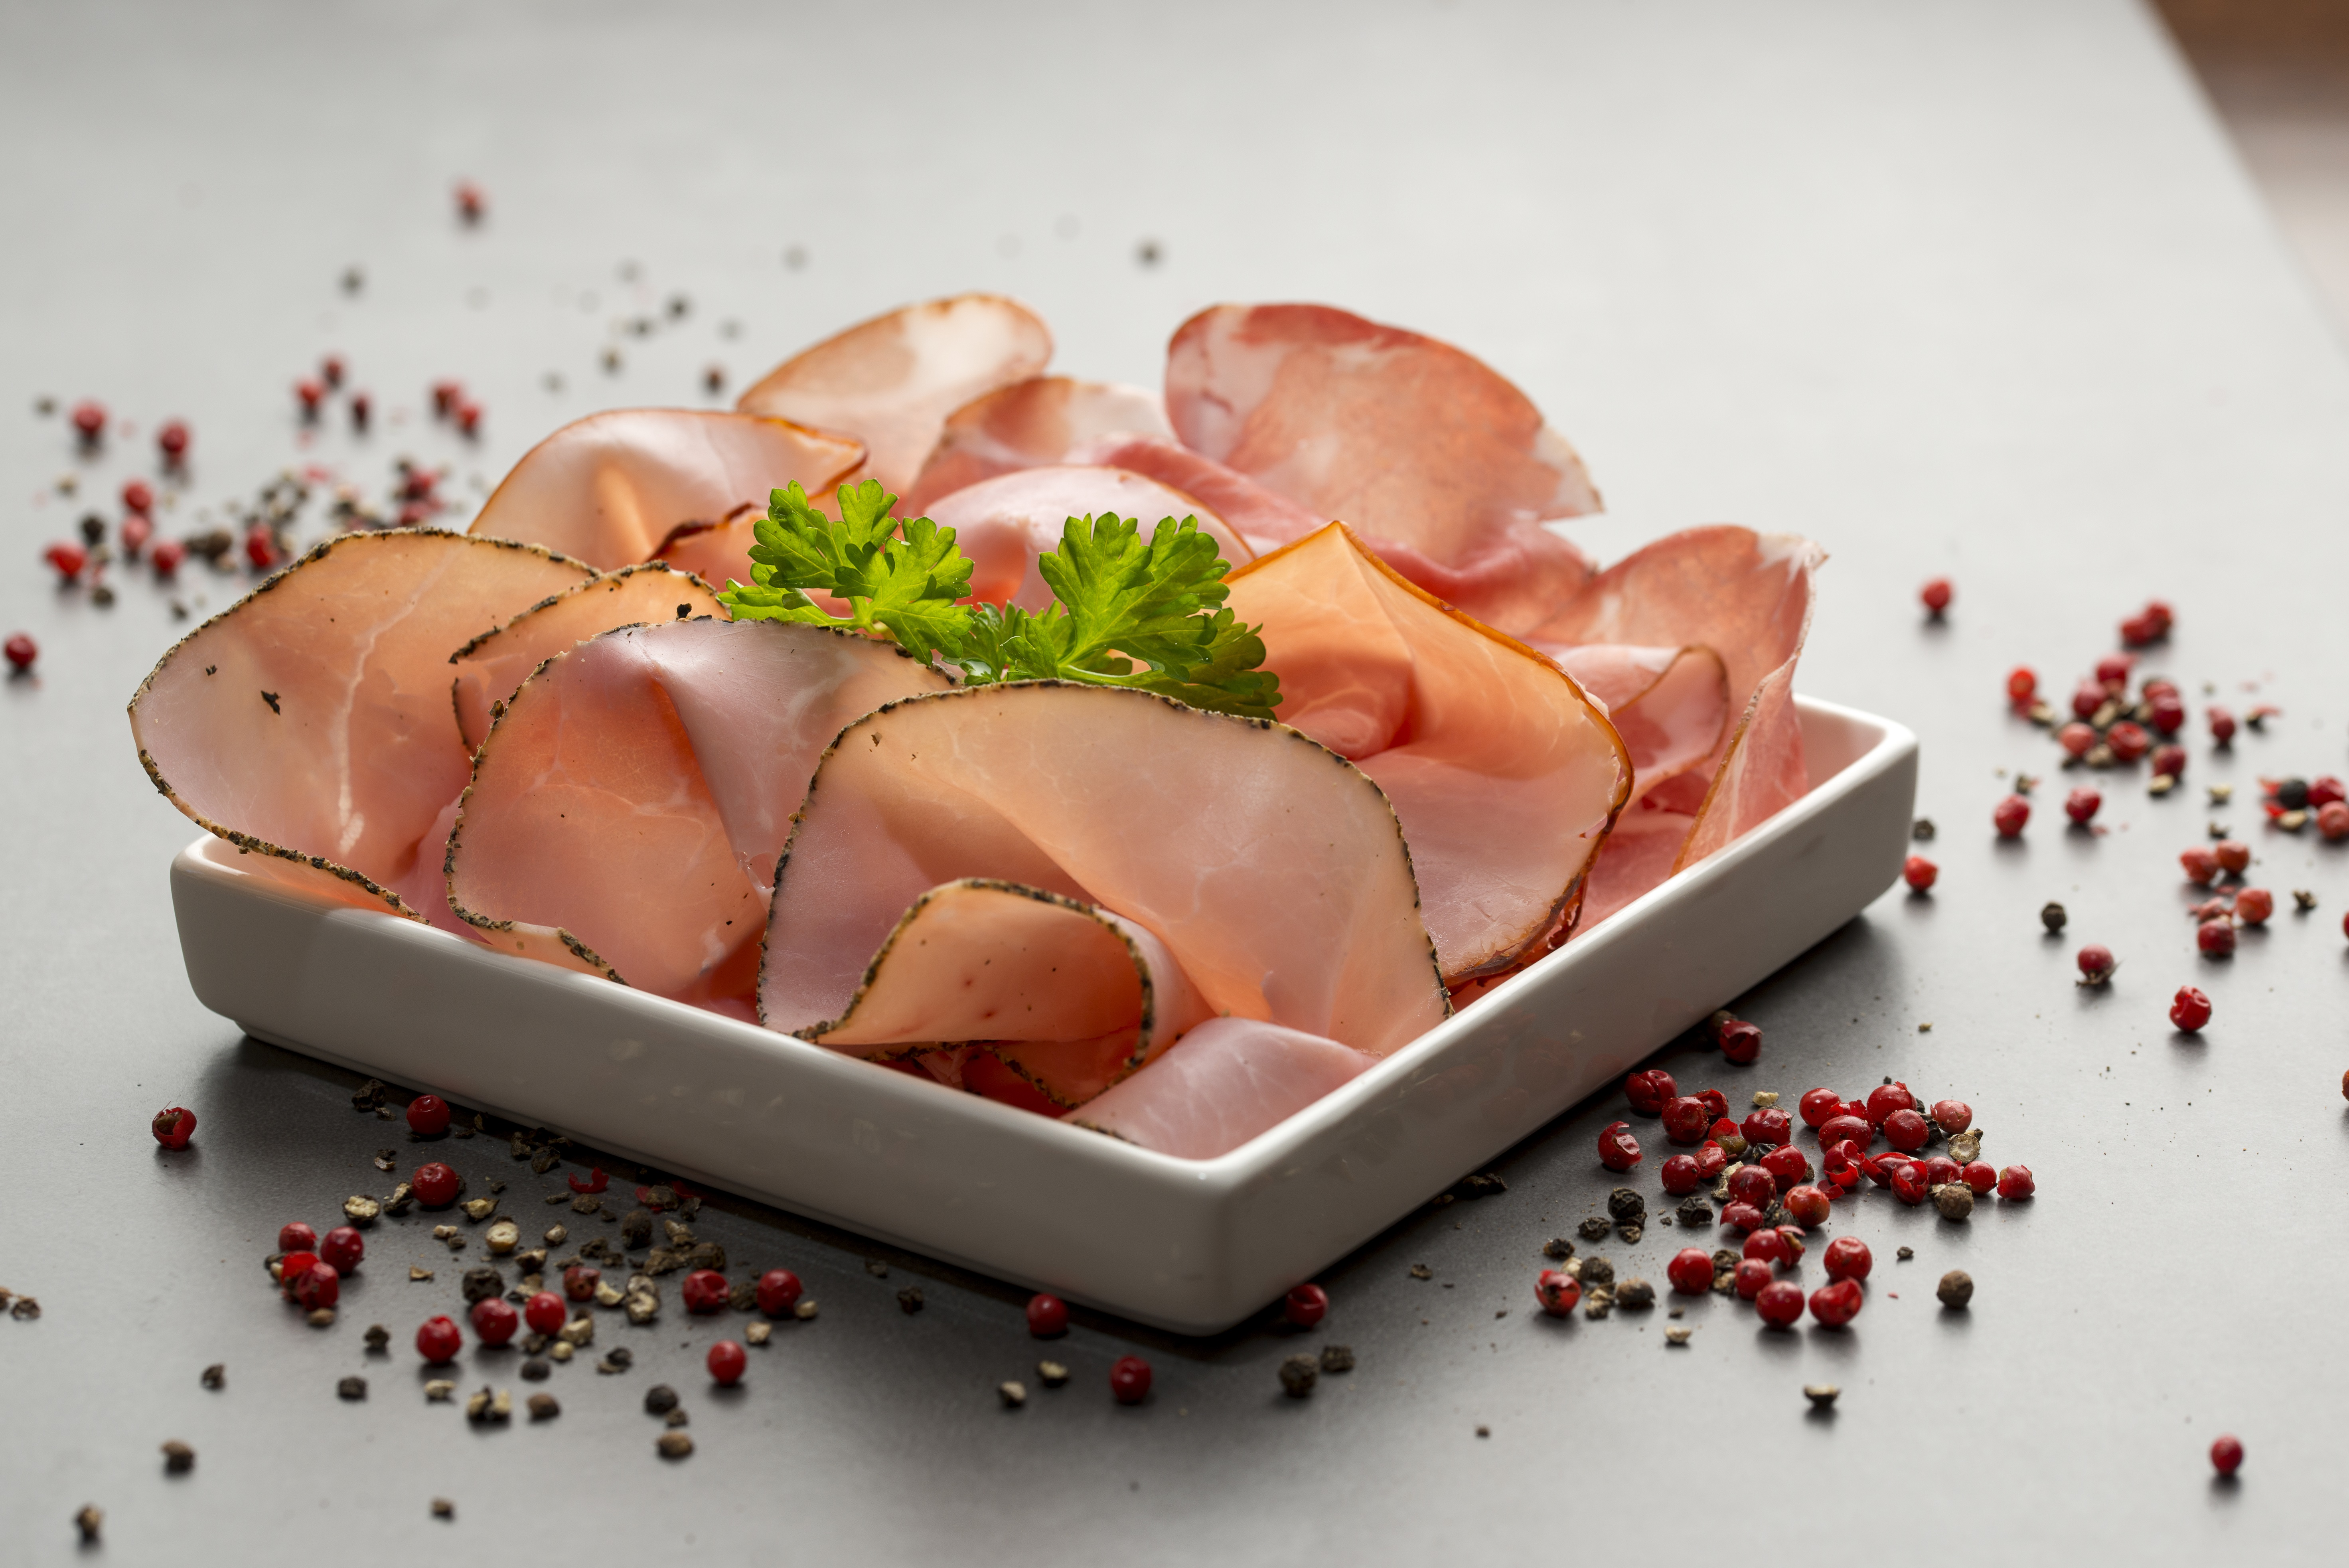 HPP high pressure processing for Meat products, ham, sausages, bacon etc.